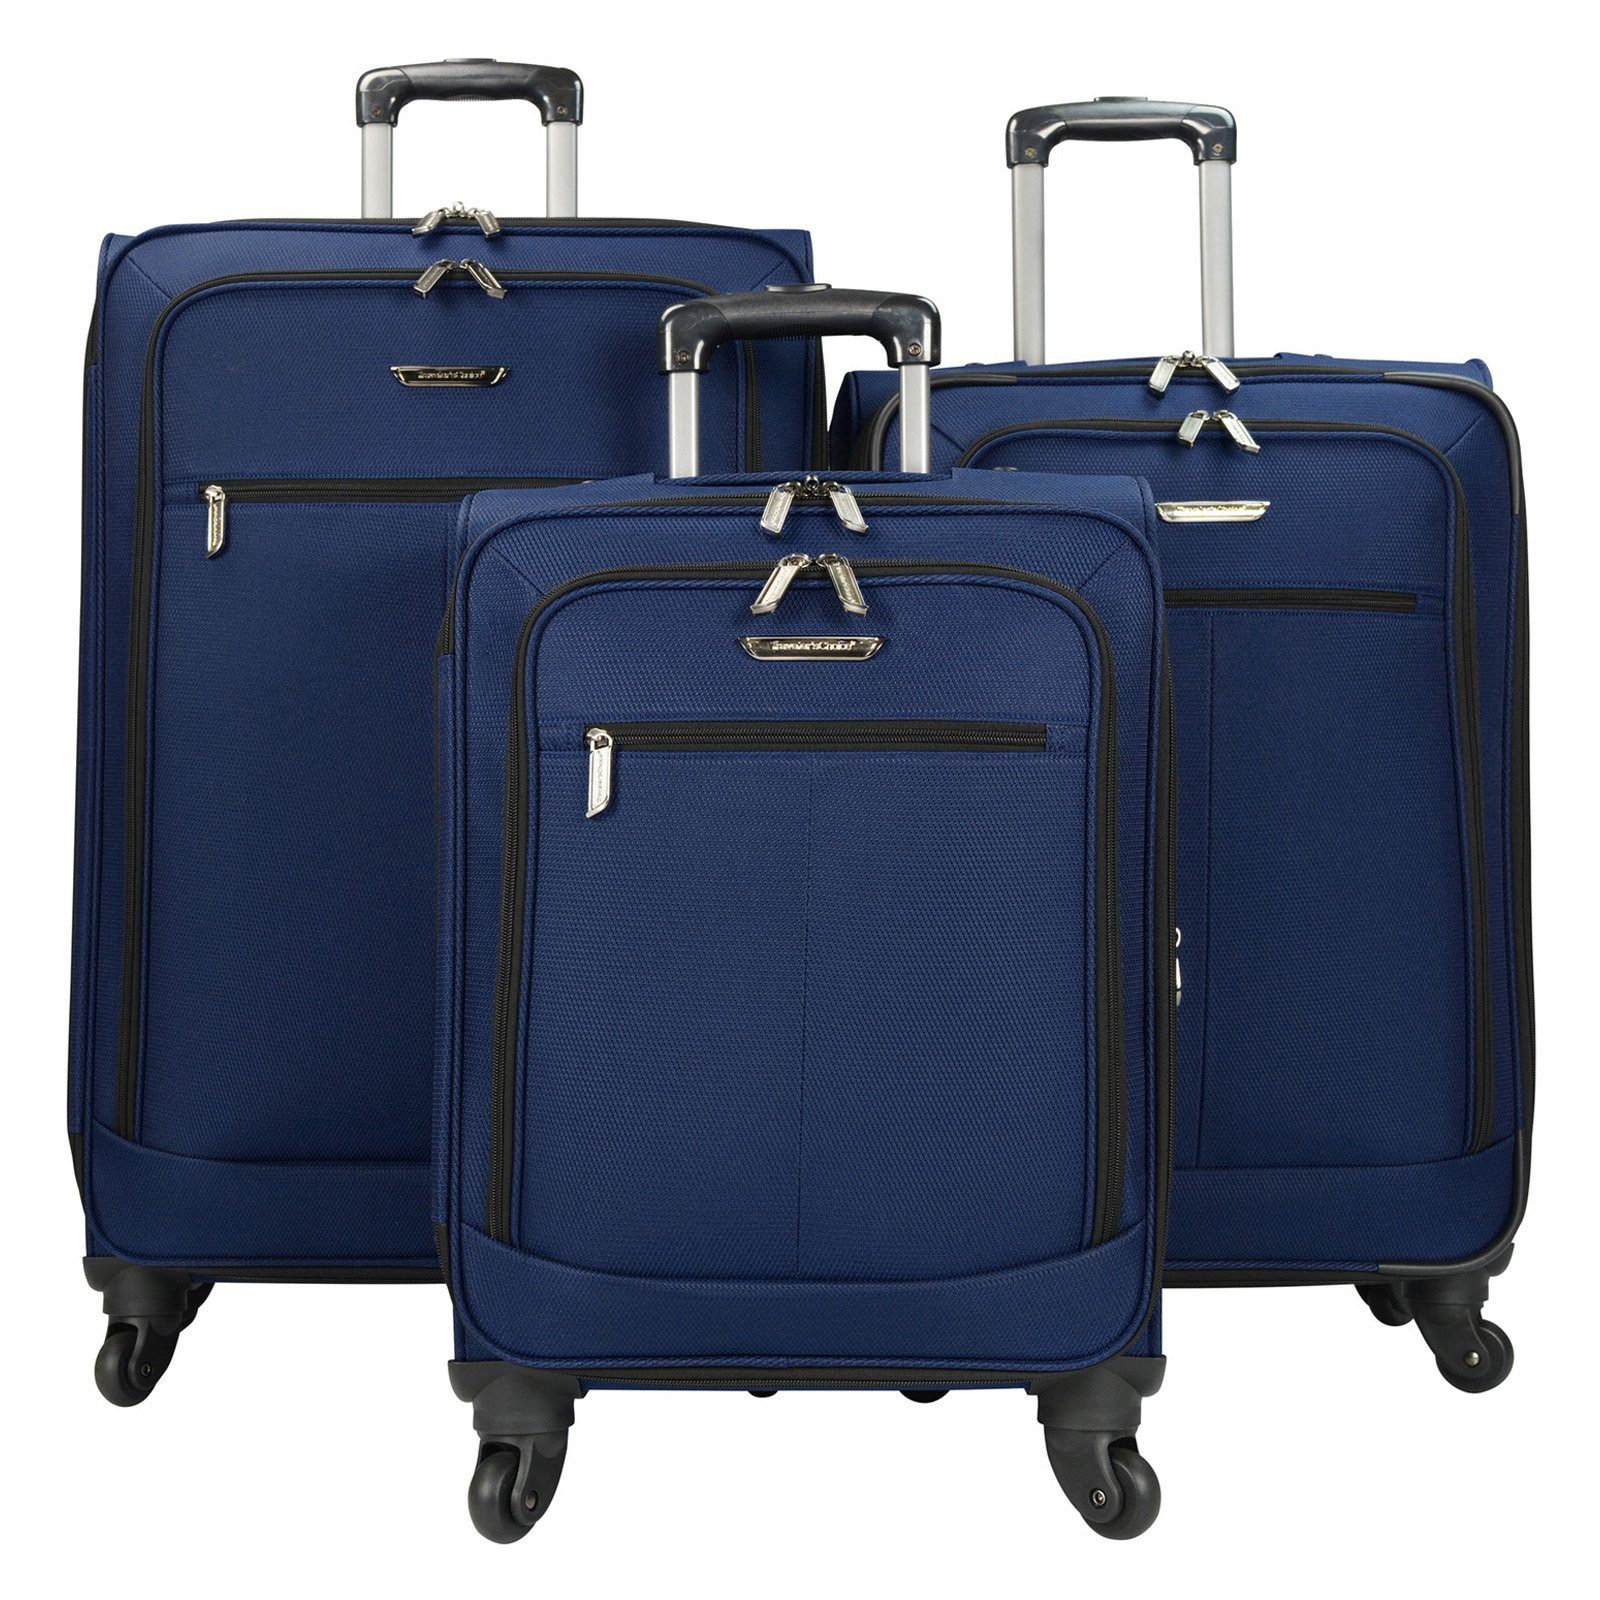 Travelers Choice 3 Piece Lightweight Expandable Spinner Luggage Set